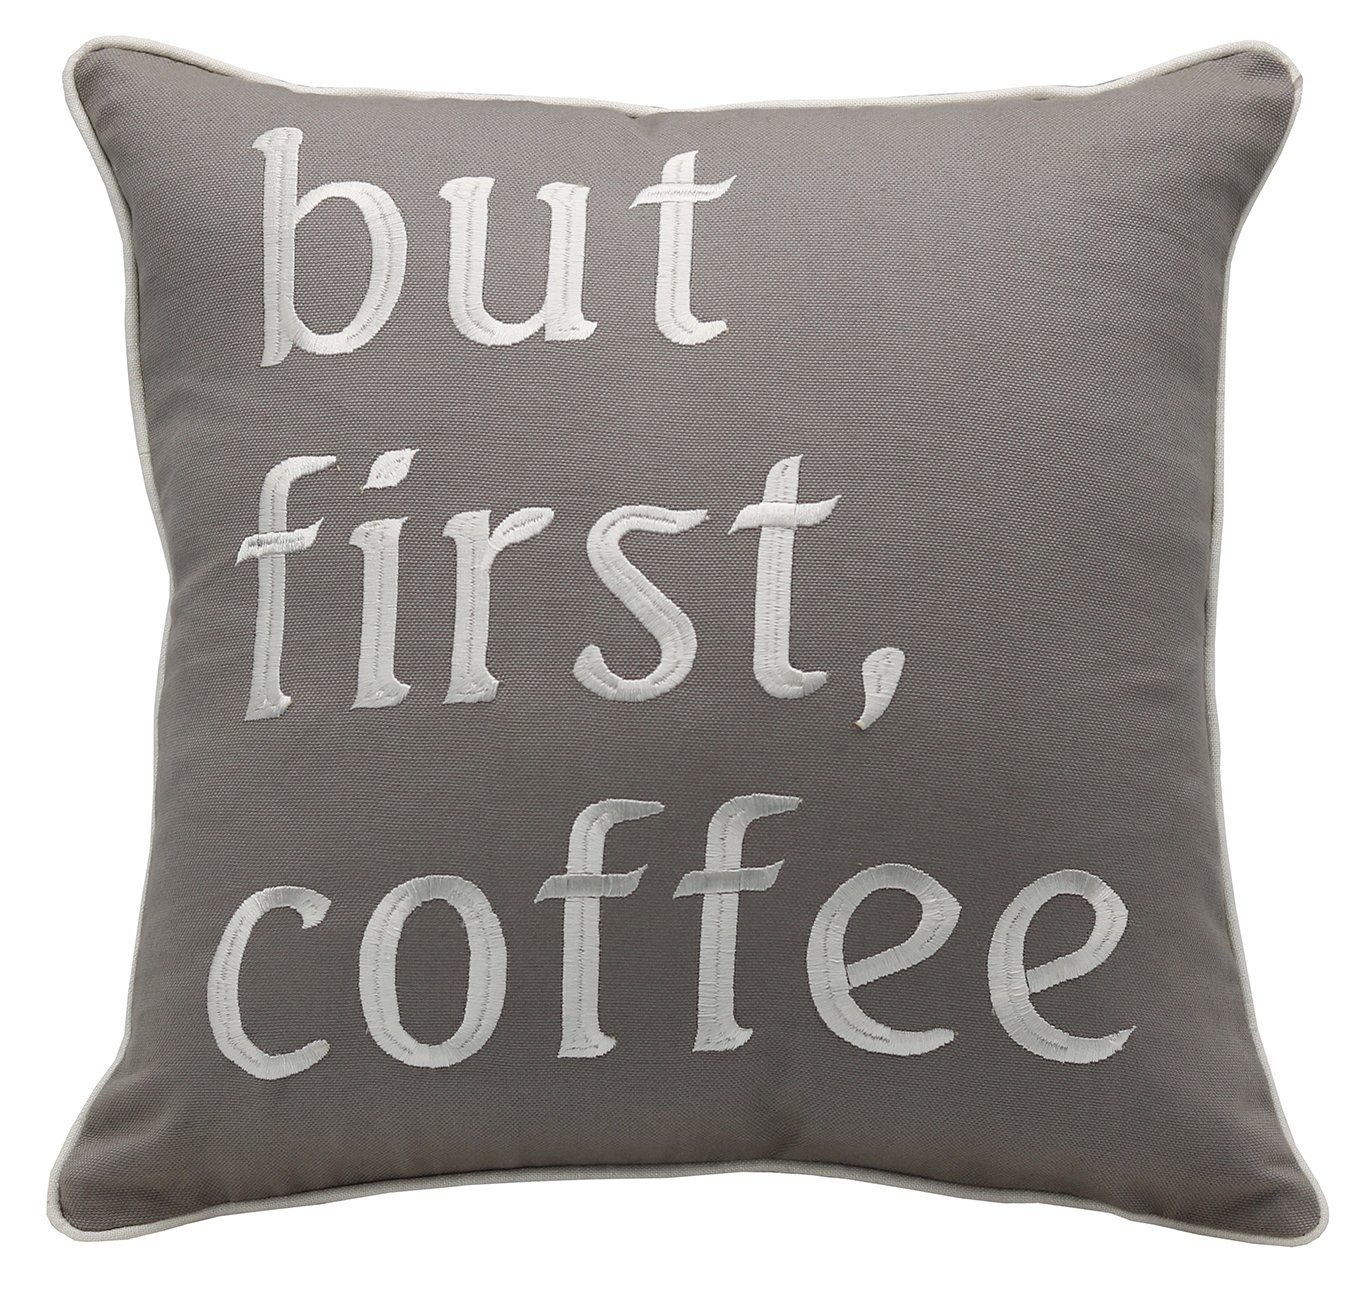 YugTex Pillowcases But First Coffee 14x14 Embroidered Throw Pillow Cover Coffee Lovers Gift Coffee Shop Cushion Cover Wedding Anniversary Couple Lovers Cushion Cover